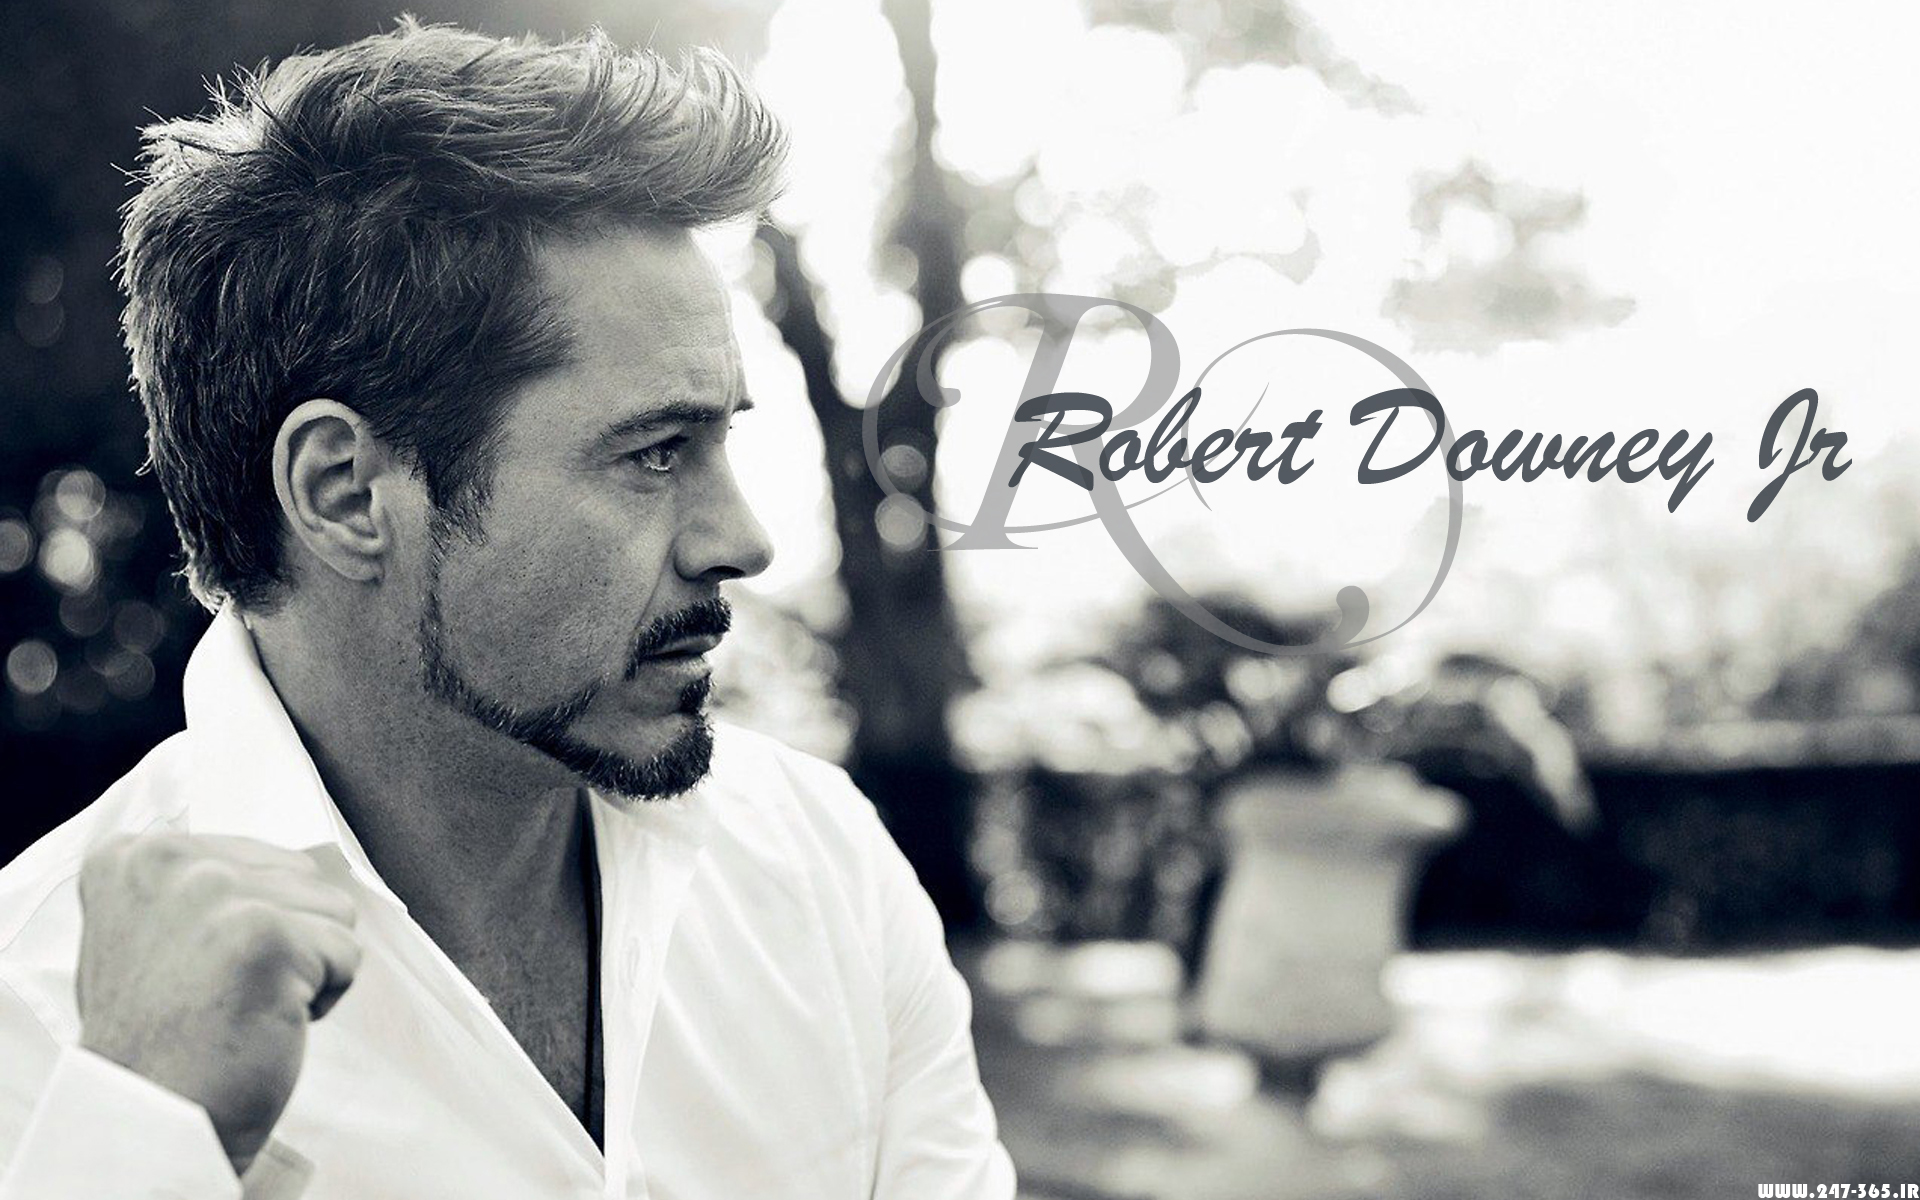 http://dl.247-365.ir/pic/celebrity/robert_downey_jr_2/Robert_Downey_Jr_2_14.jpg